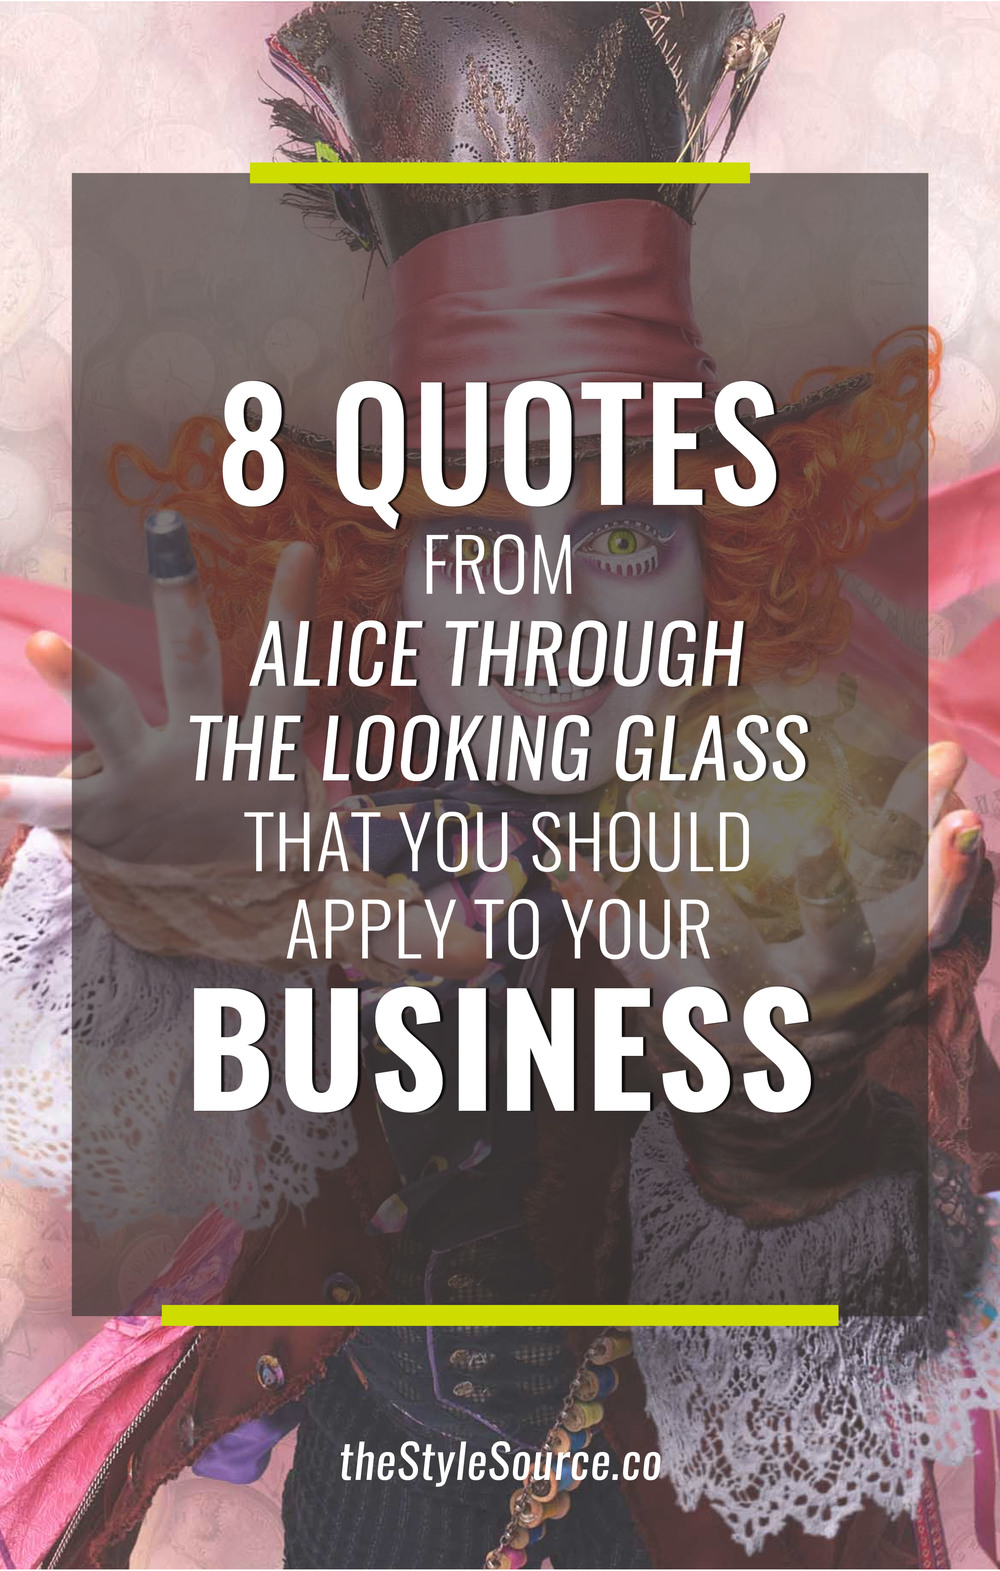 Through The Looking Glass Quotes Cool 8 Quotes From Alice Through The Looking Glass That You Should